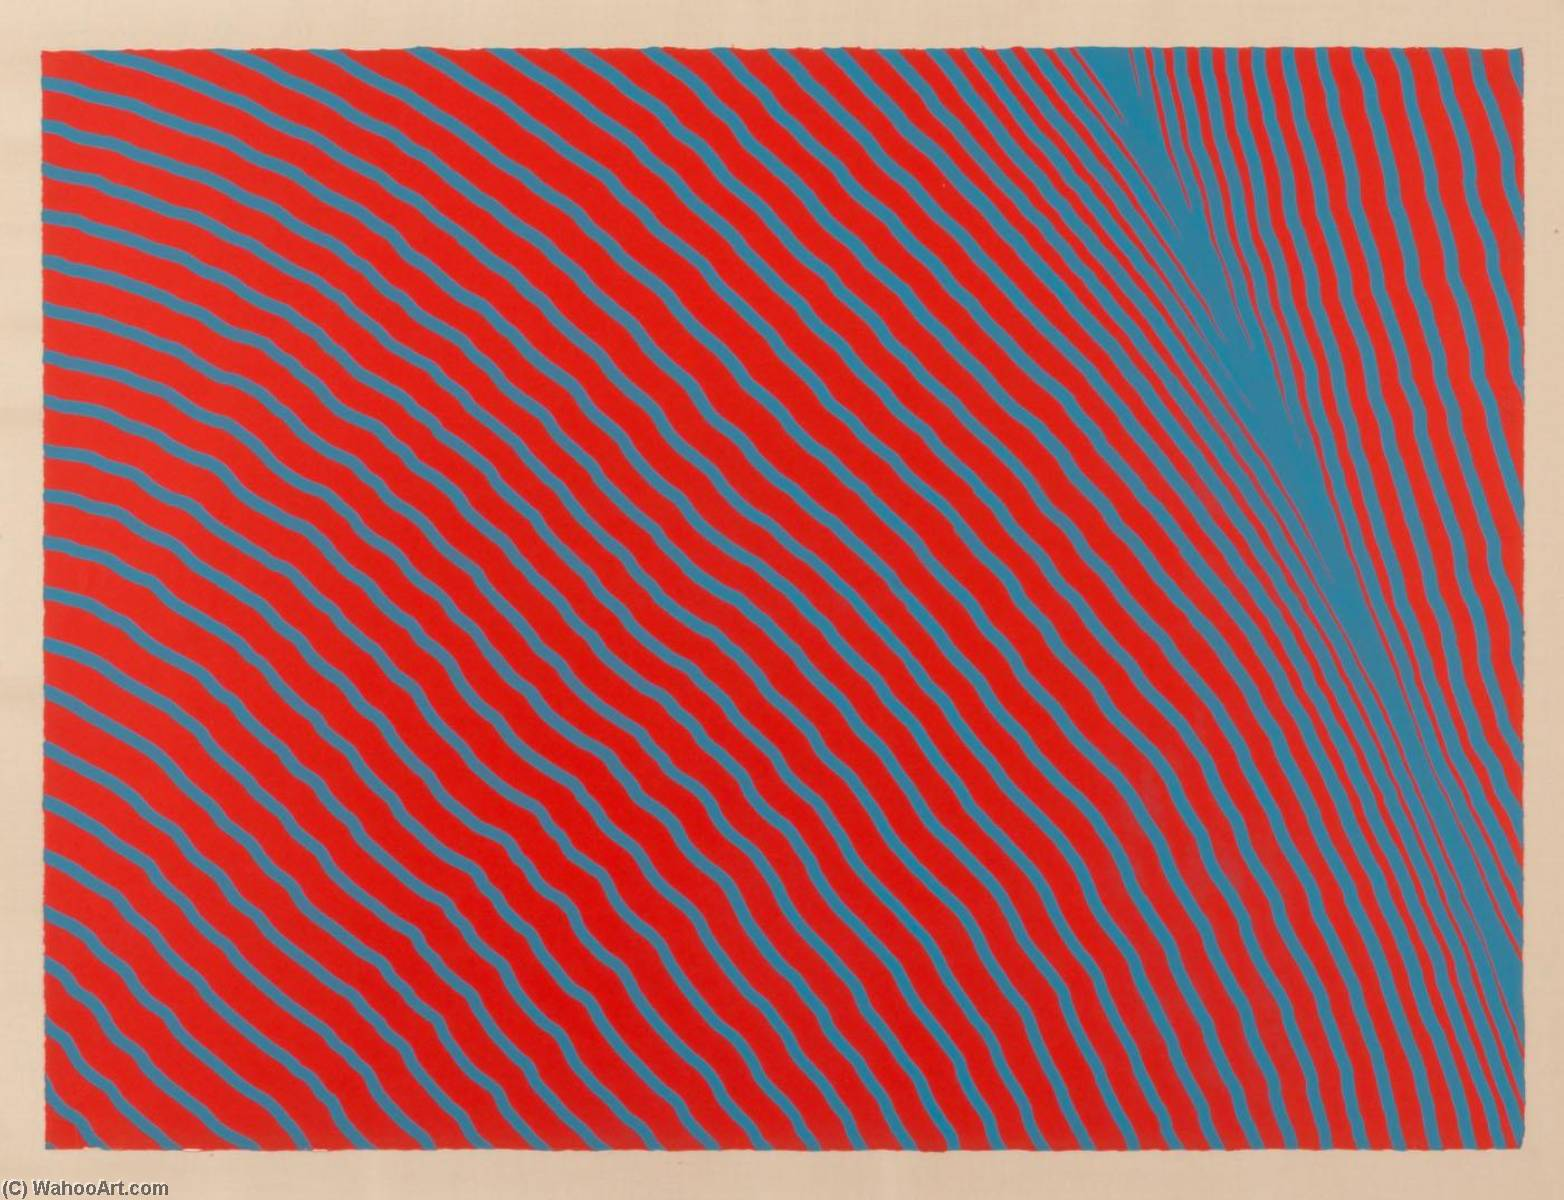 Blue on Red, Lithography by Henry Pearson